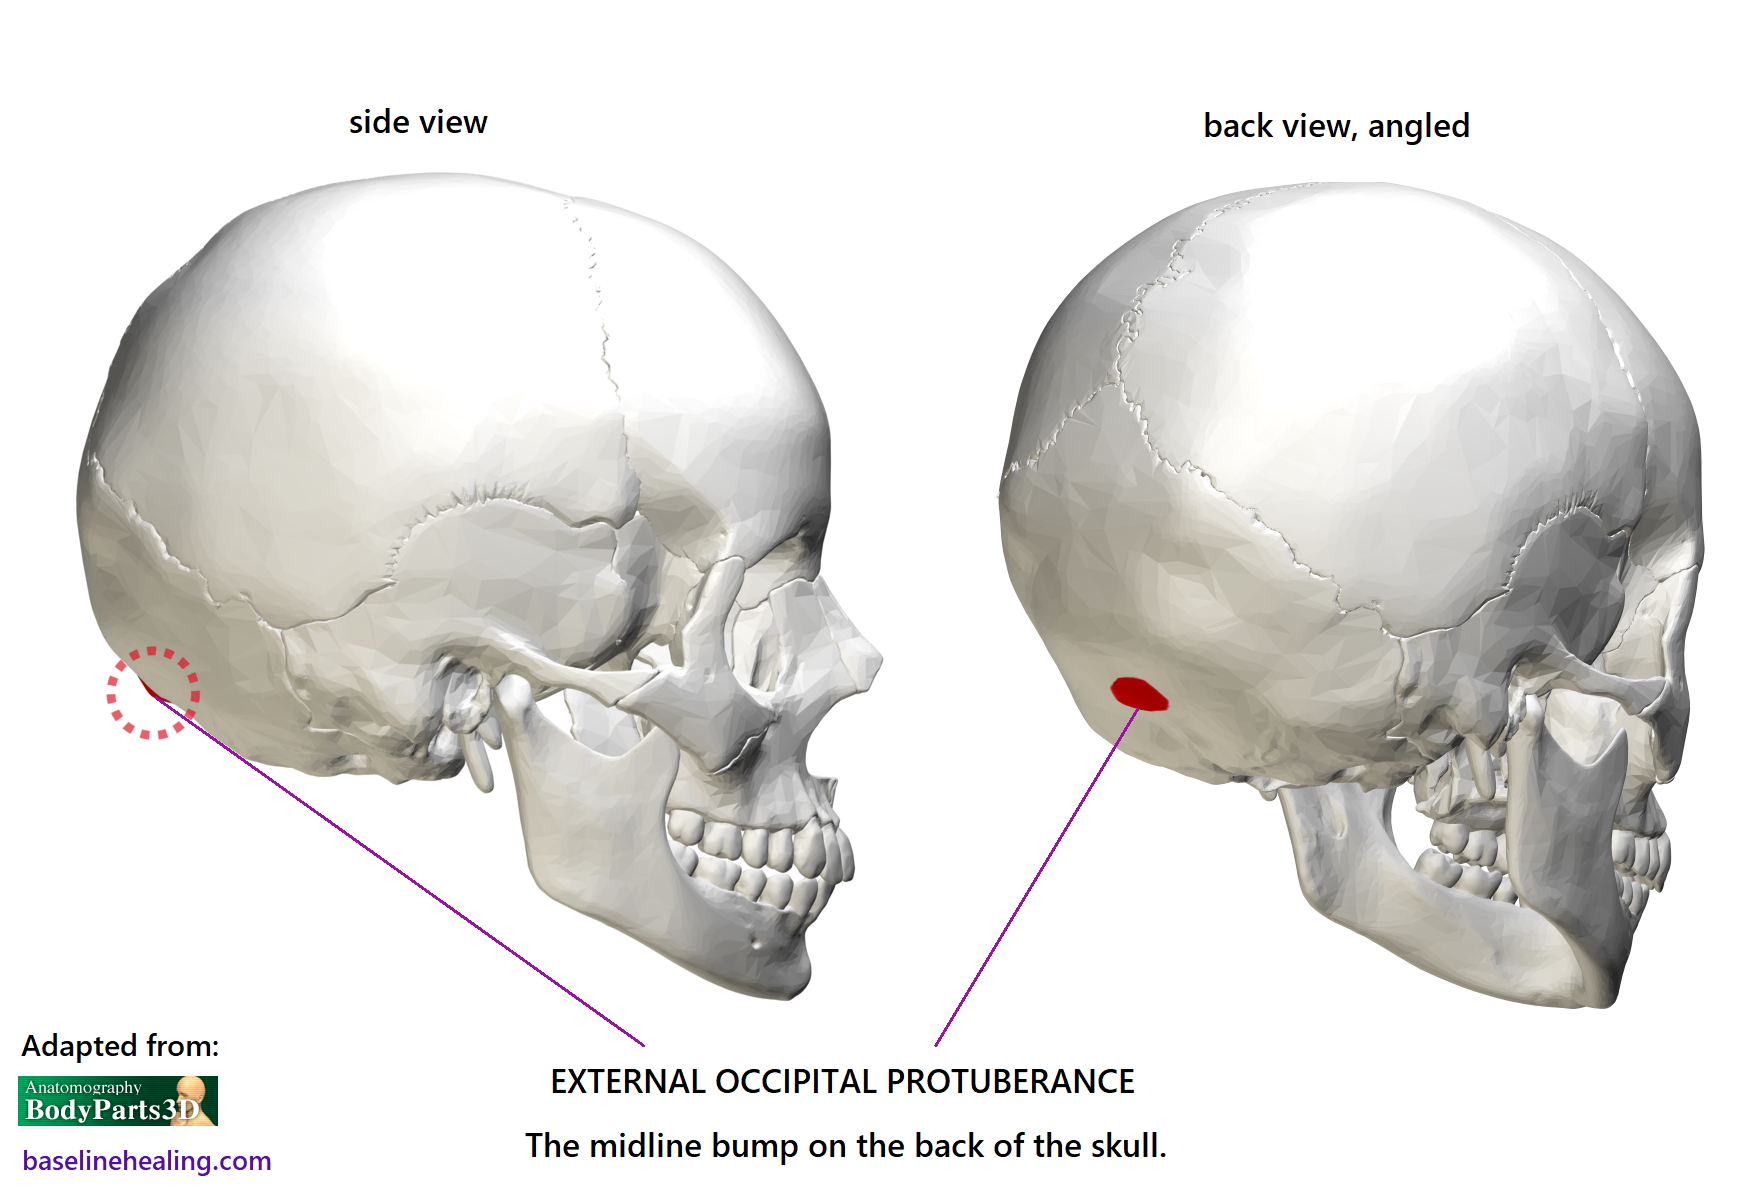 The occipital protuberance, the bump on the back of the skull on the median plane/midline